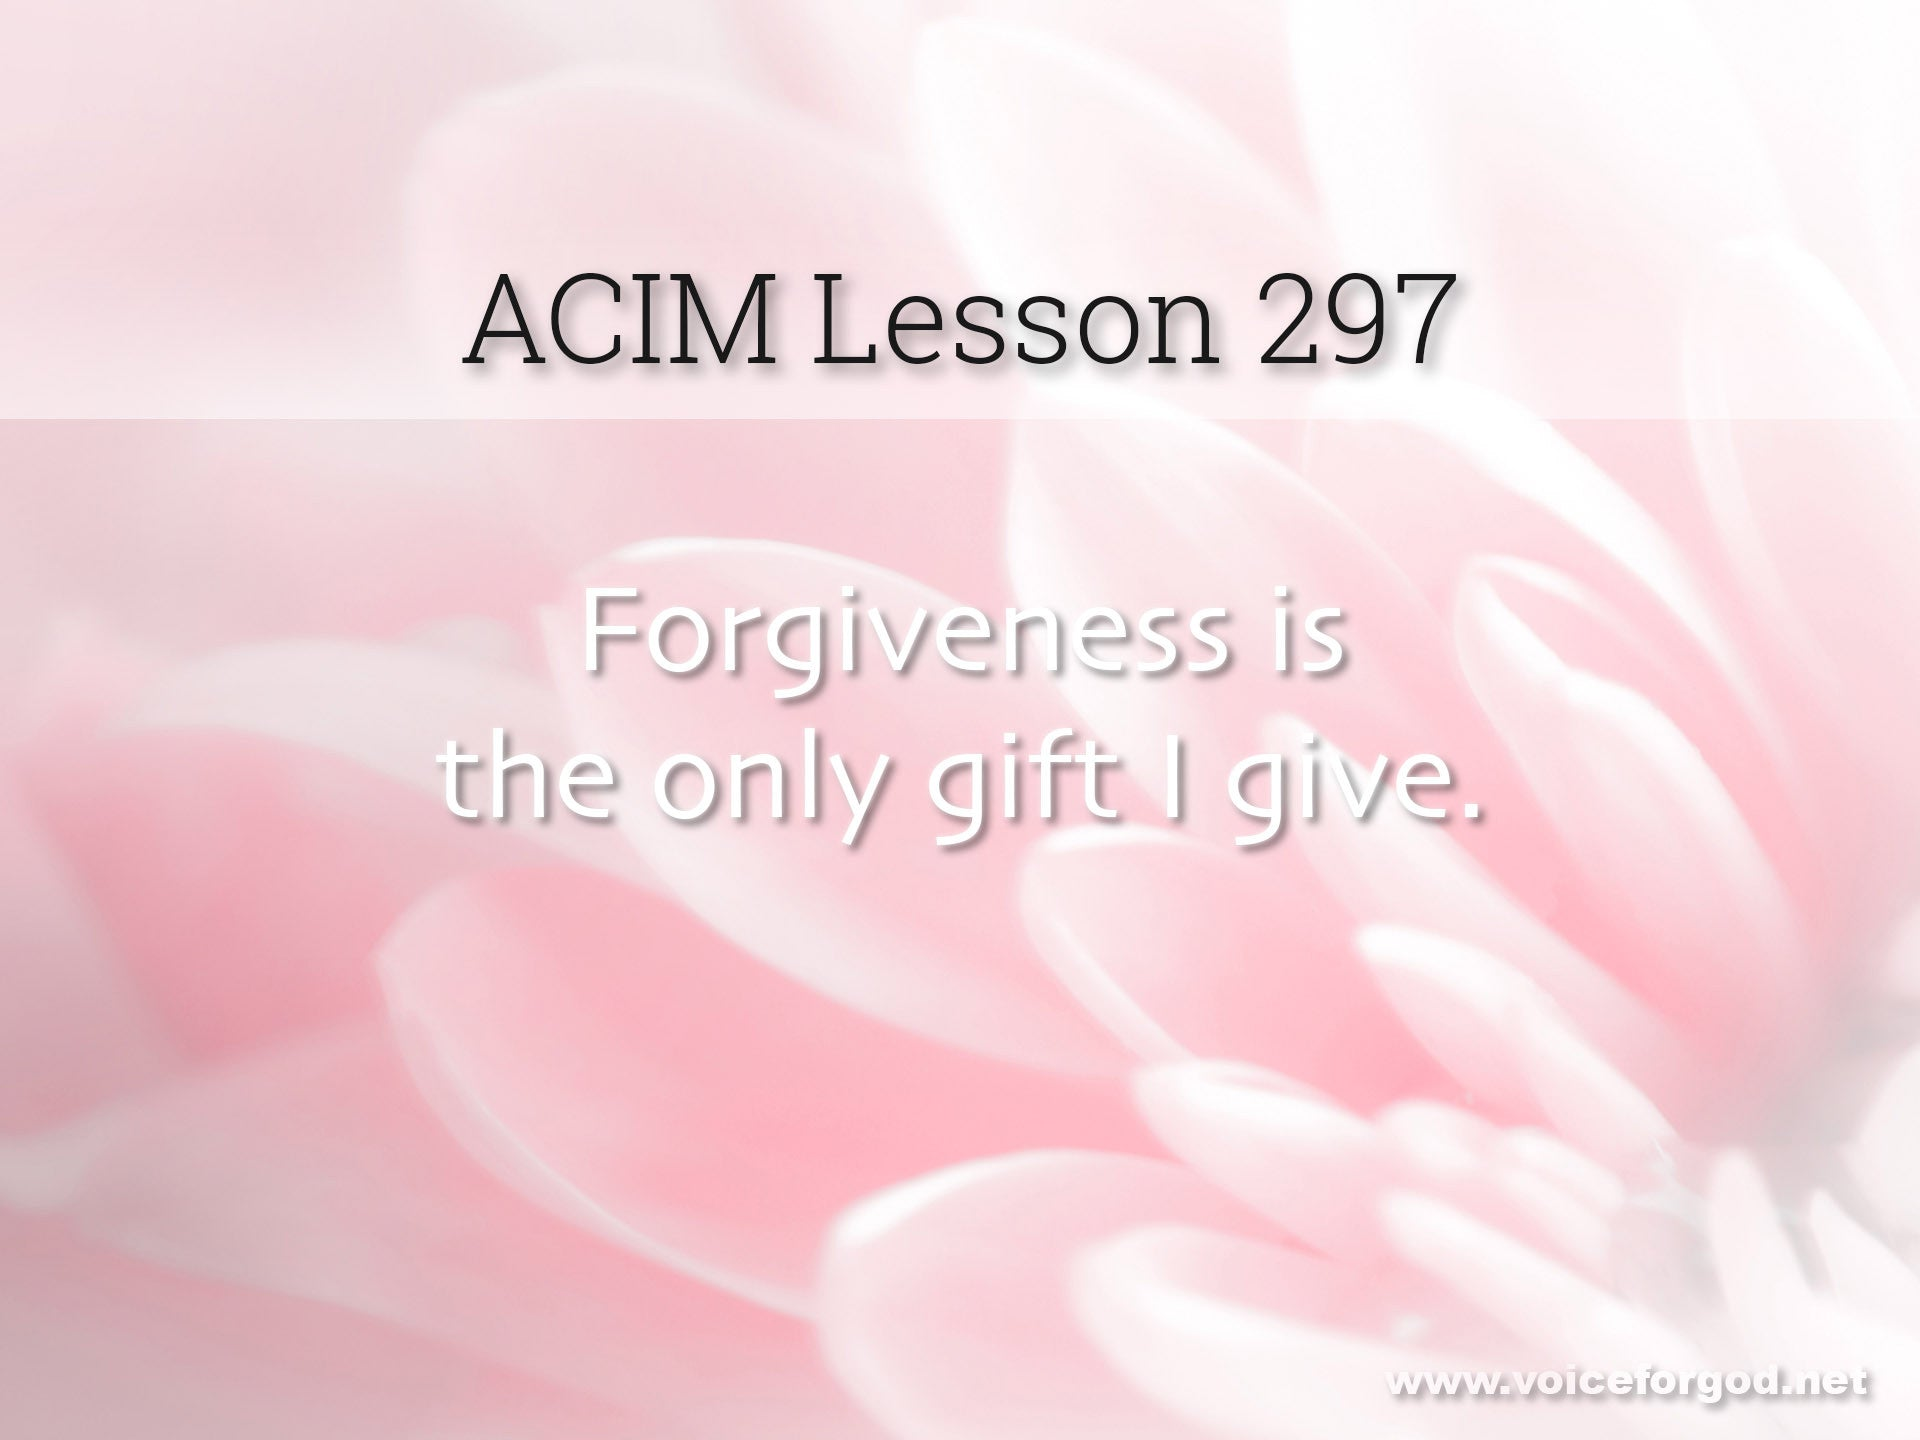 ACIM Lesson 297 - A Course in Miracles Workbook Lesson 297